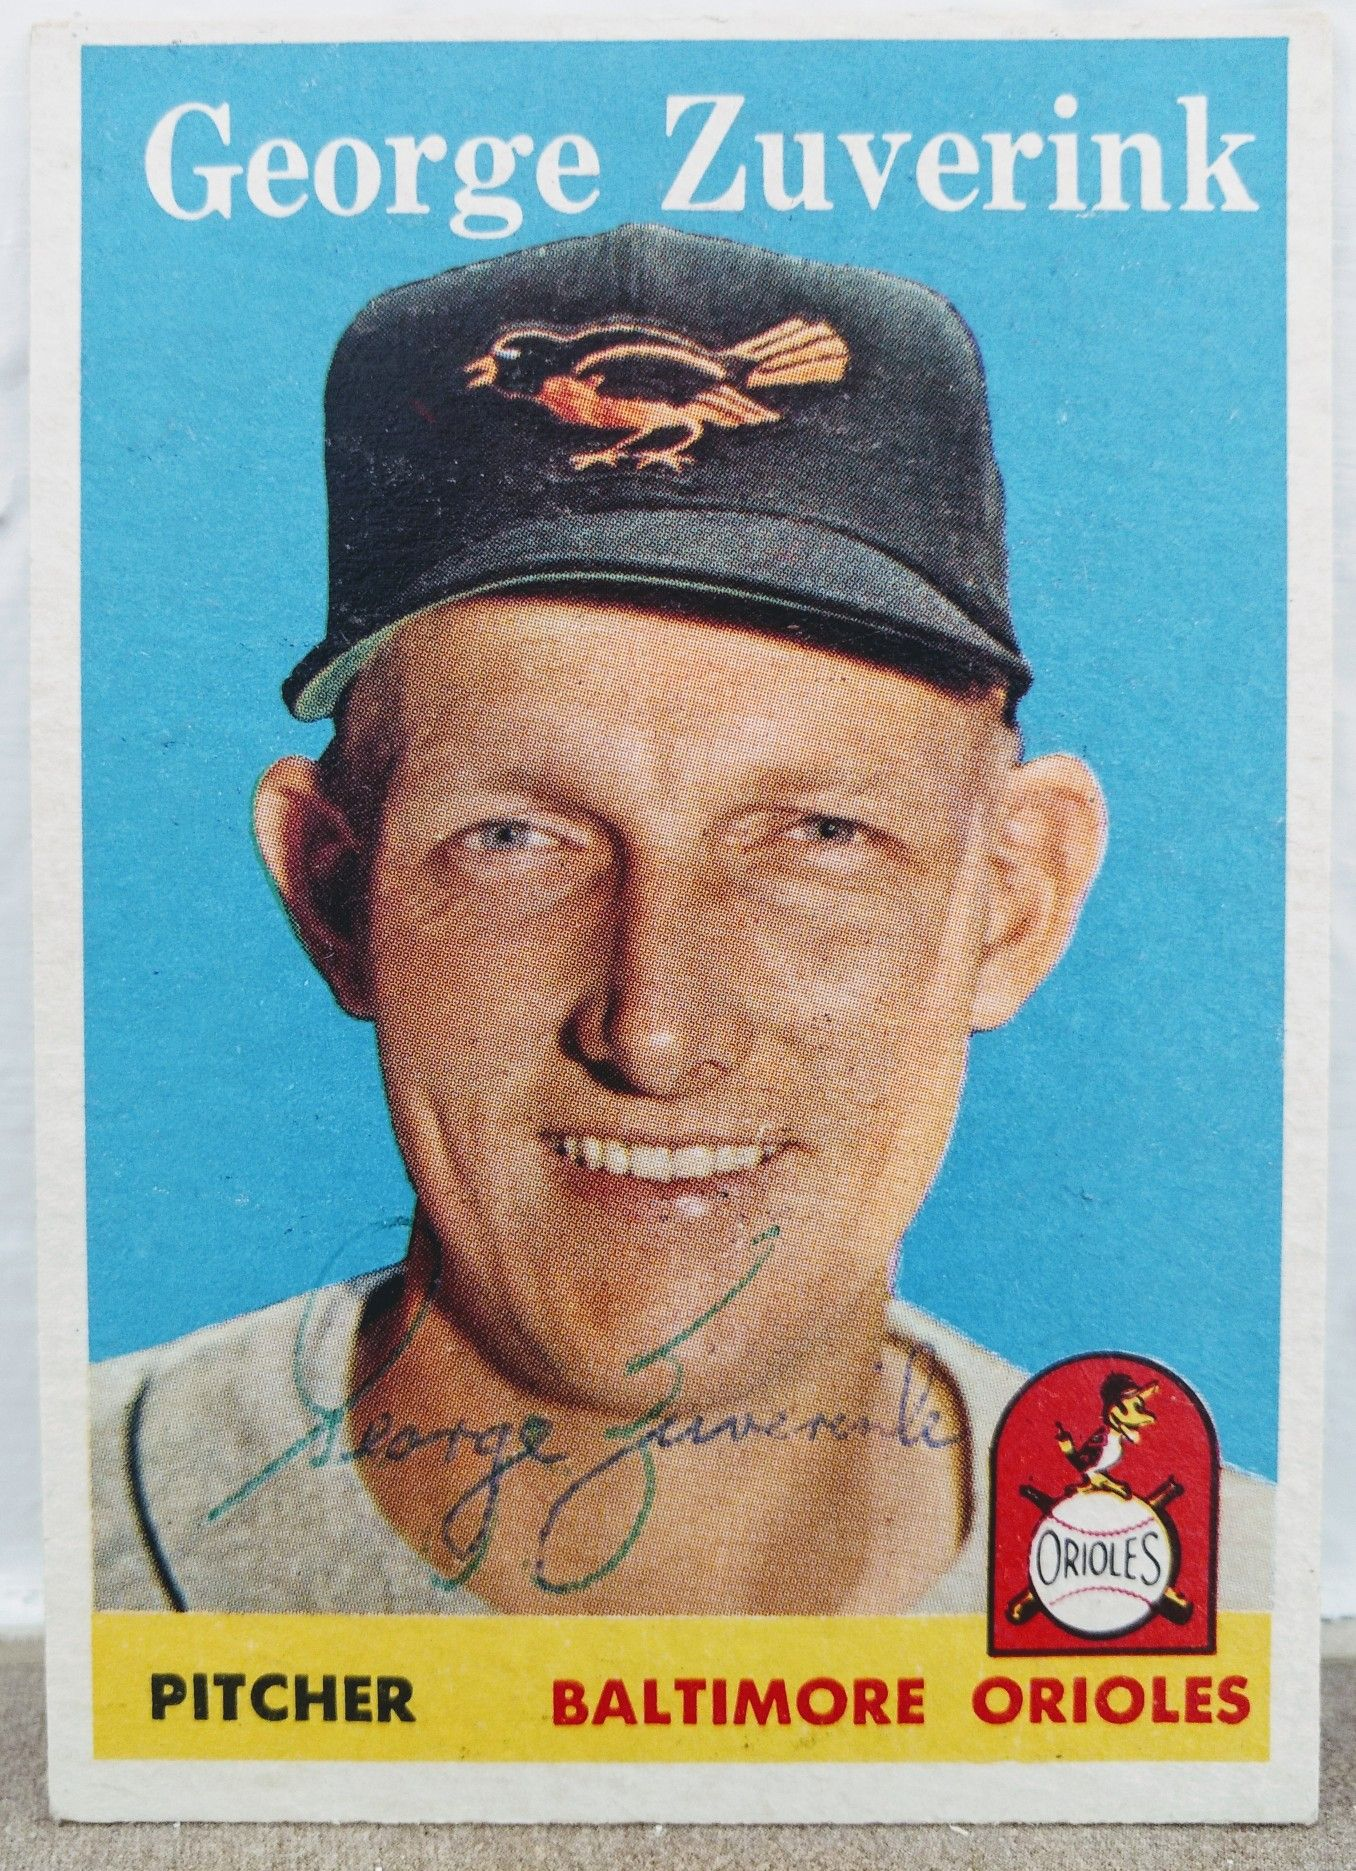 Autographed zuverink baltimore orioles card with